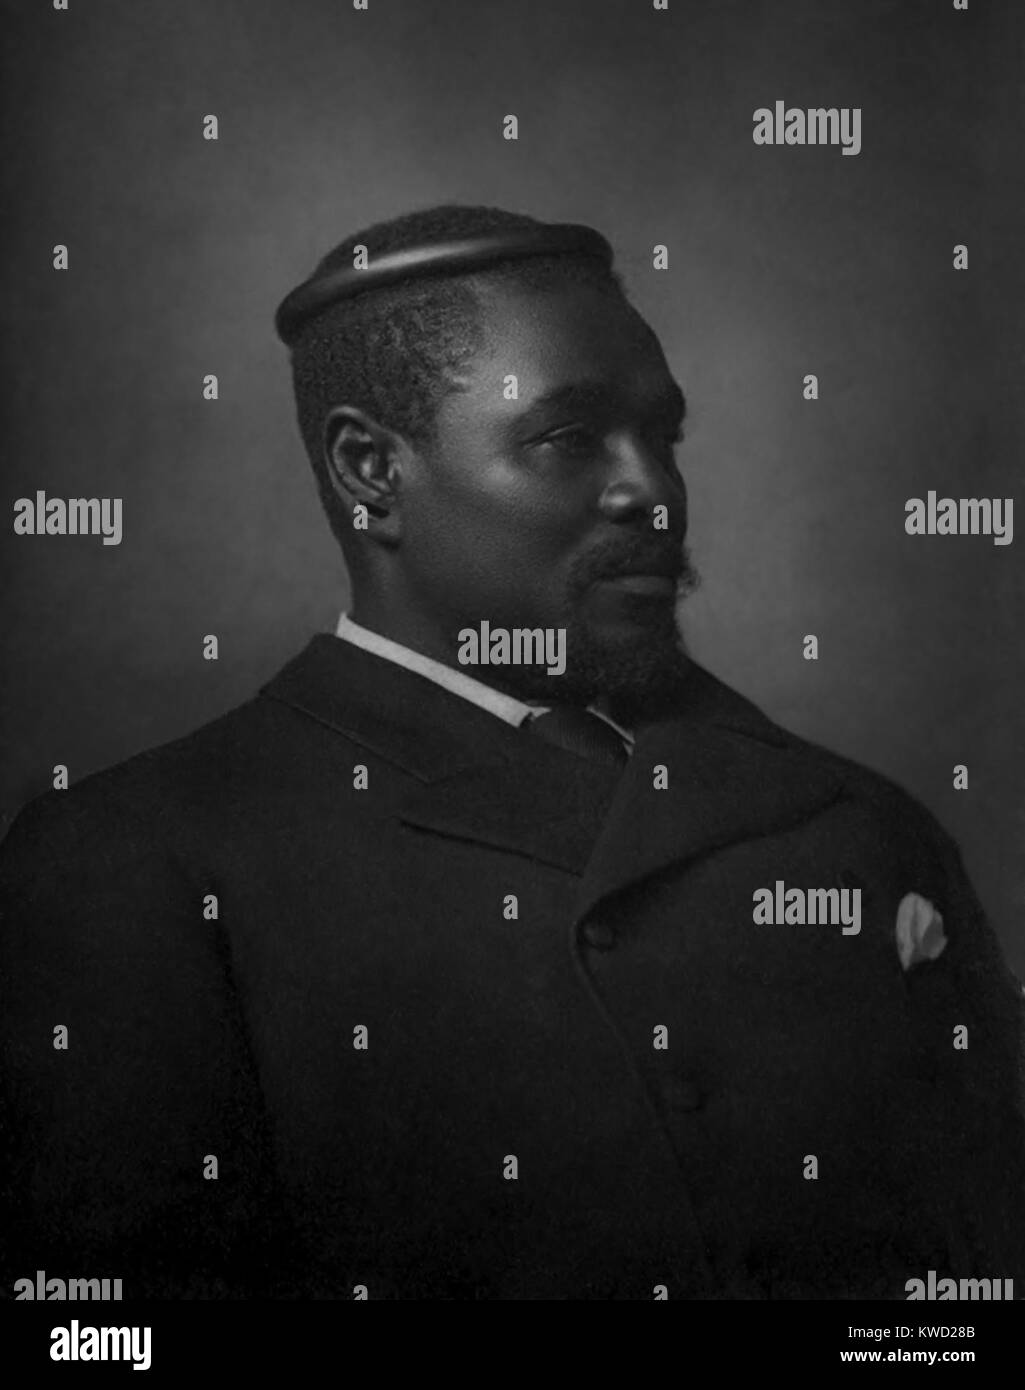 King Cetshwayo led the independent state of Zululand during the Anglo-Zulu War of 1879. British demands for his - Stock Image